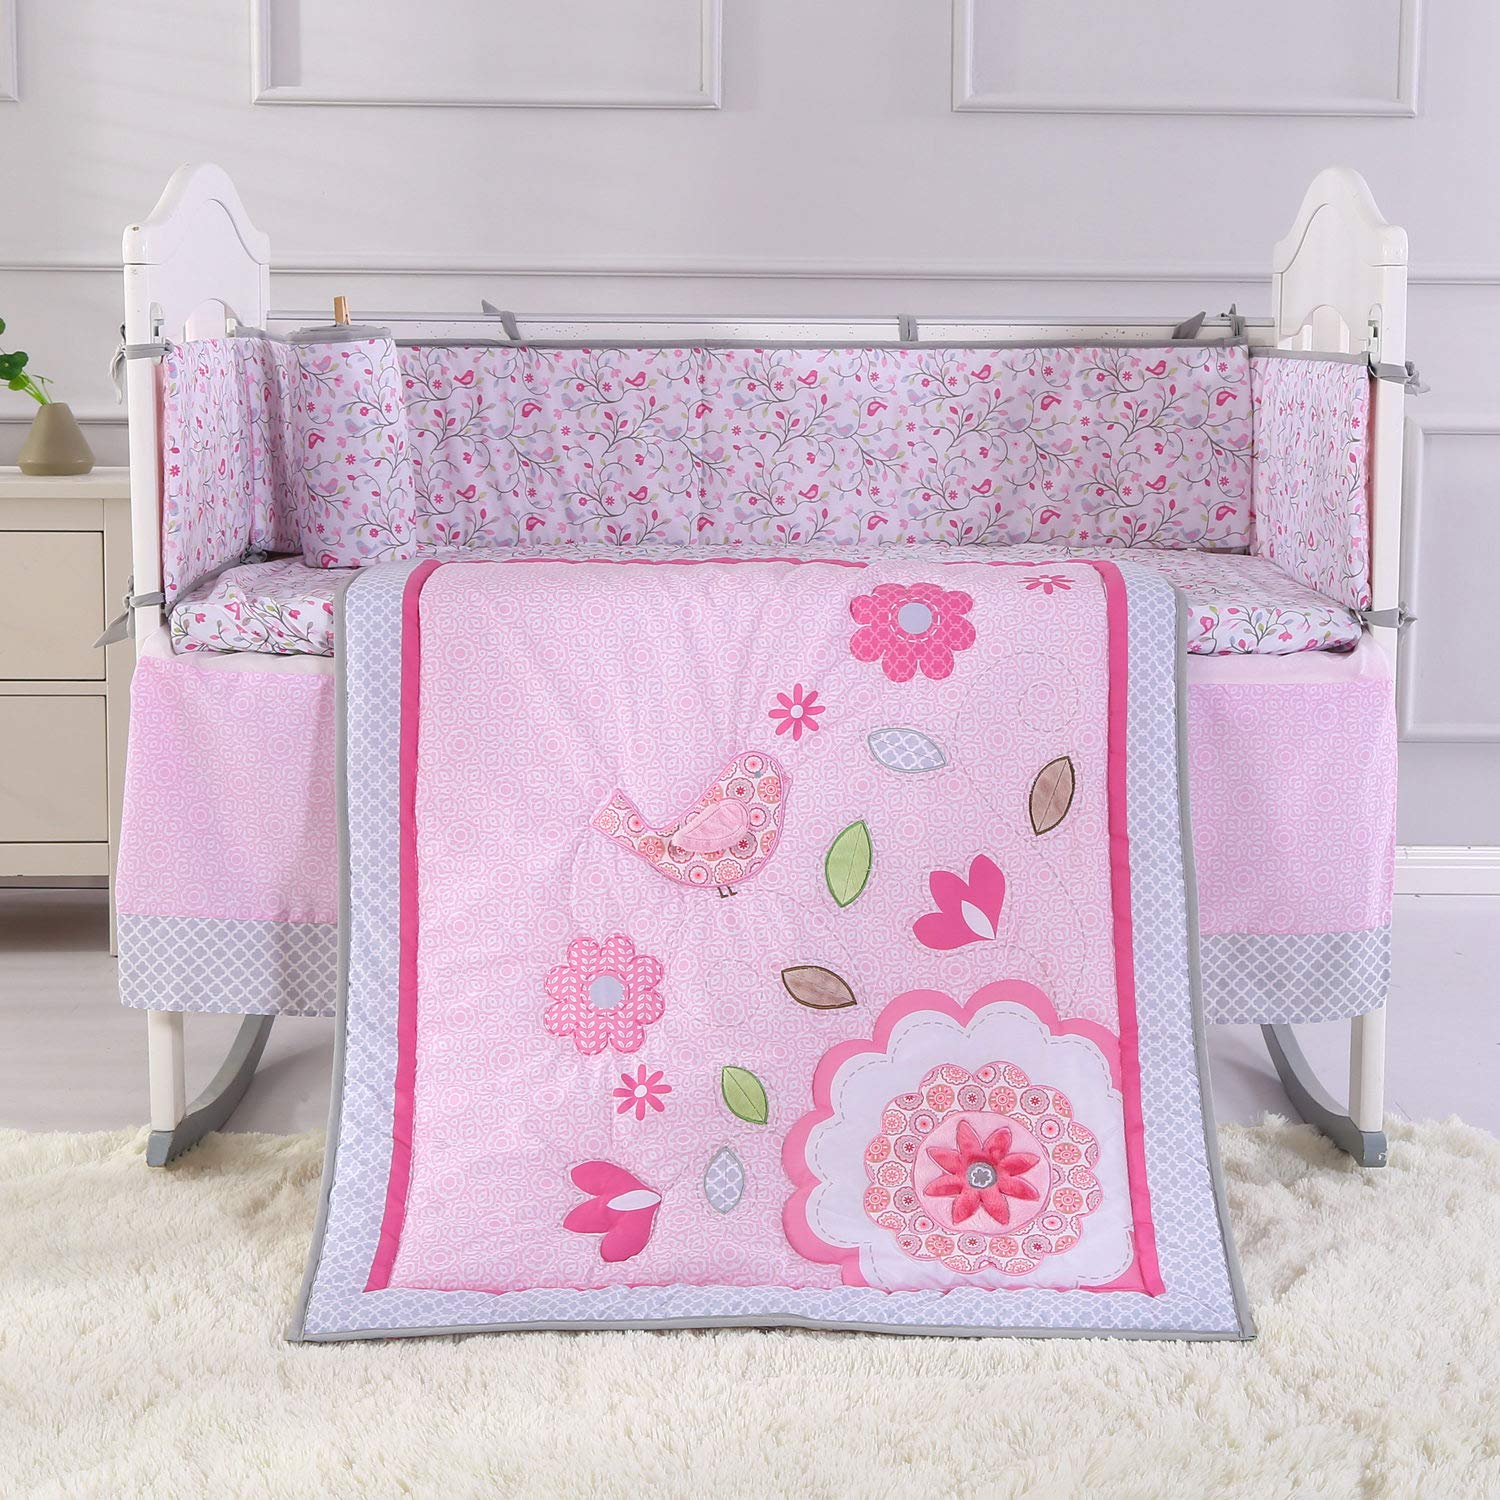 Wowelife Flower Crib Bedding Set Pink Birds Playing 7 Piece Baby Crib Sets with 4 Bumper Pads(Pink-7 Piece)